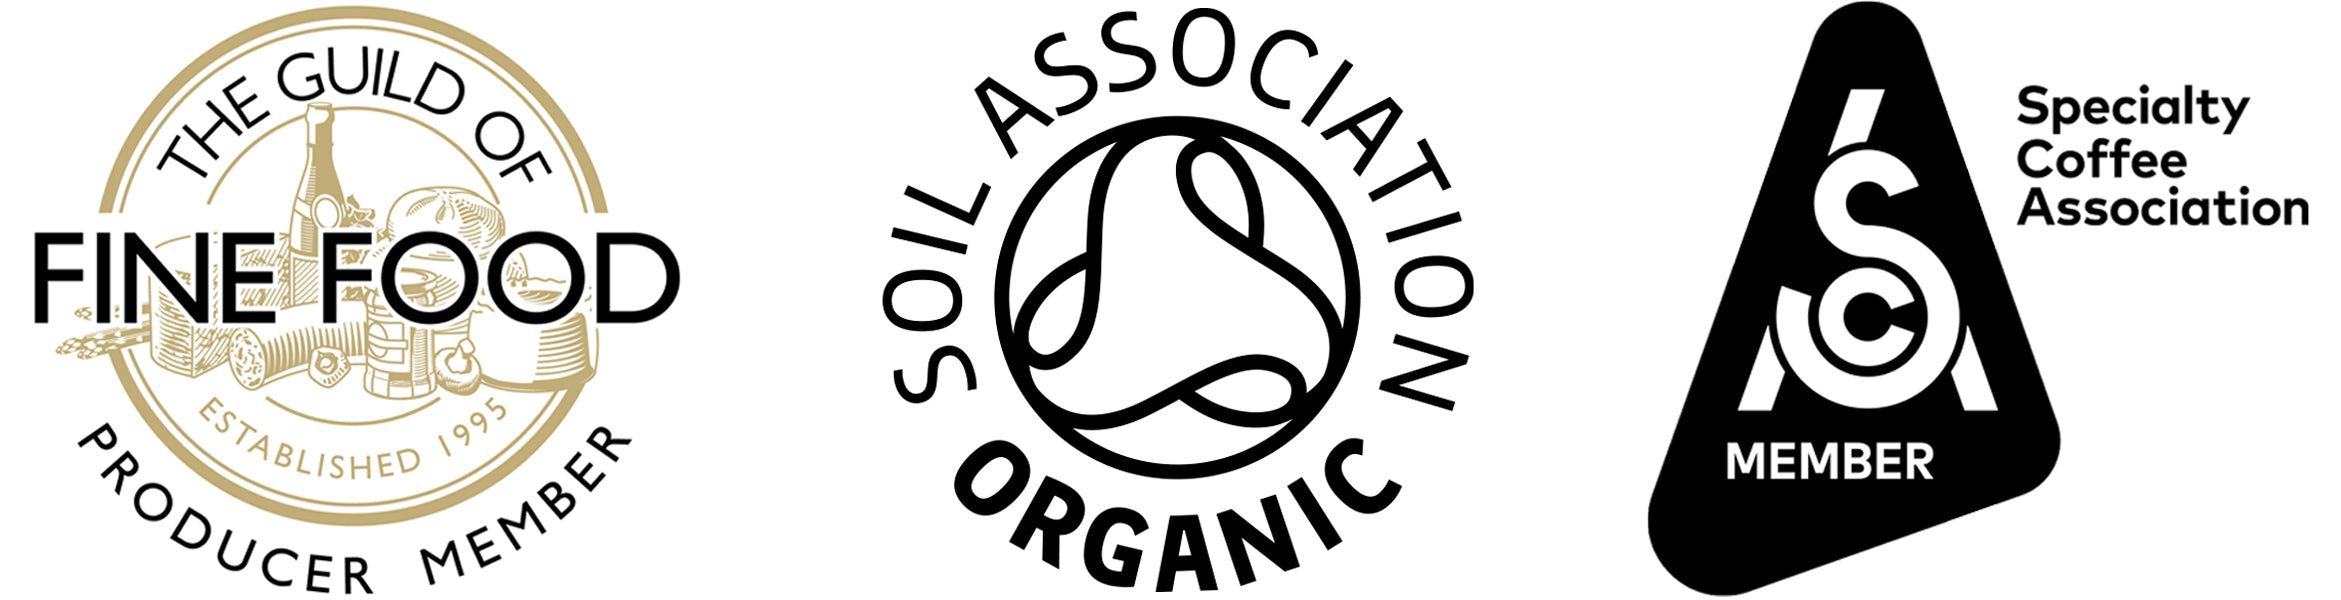 Norlo Coffee - Guild of fine food, speciality coffee association, soil association organic